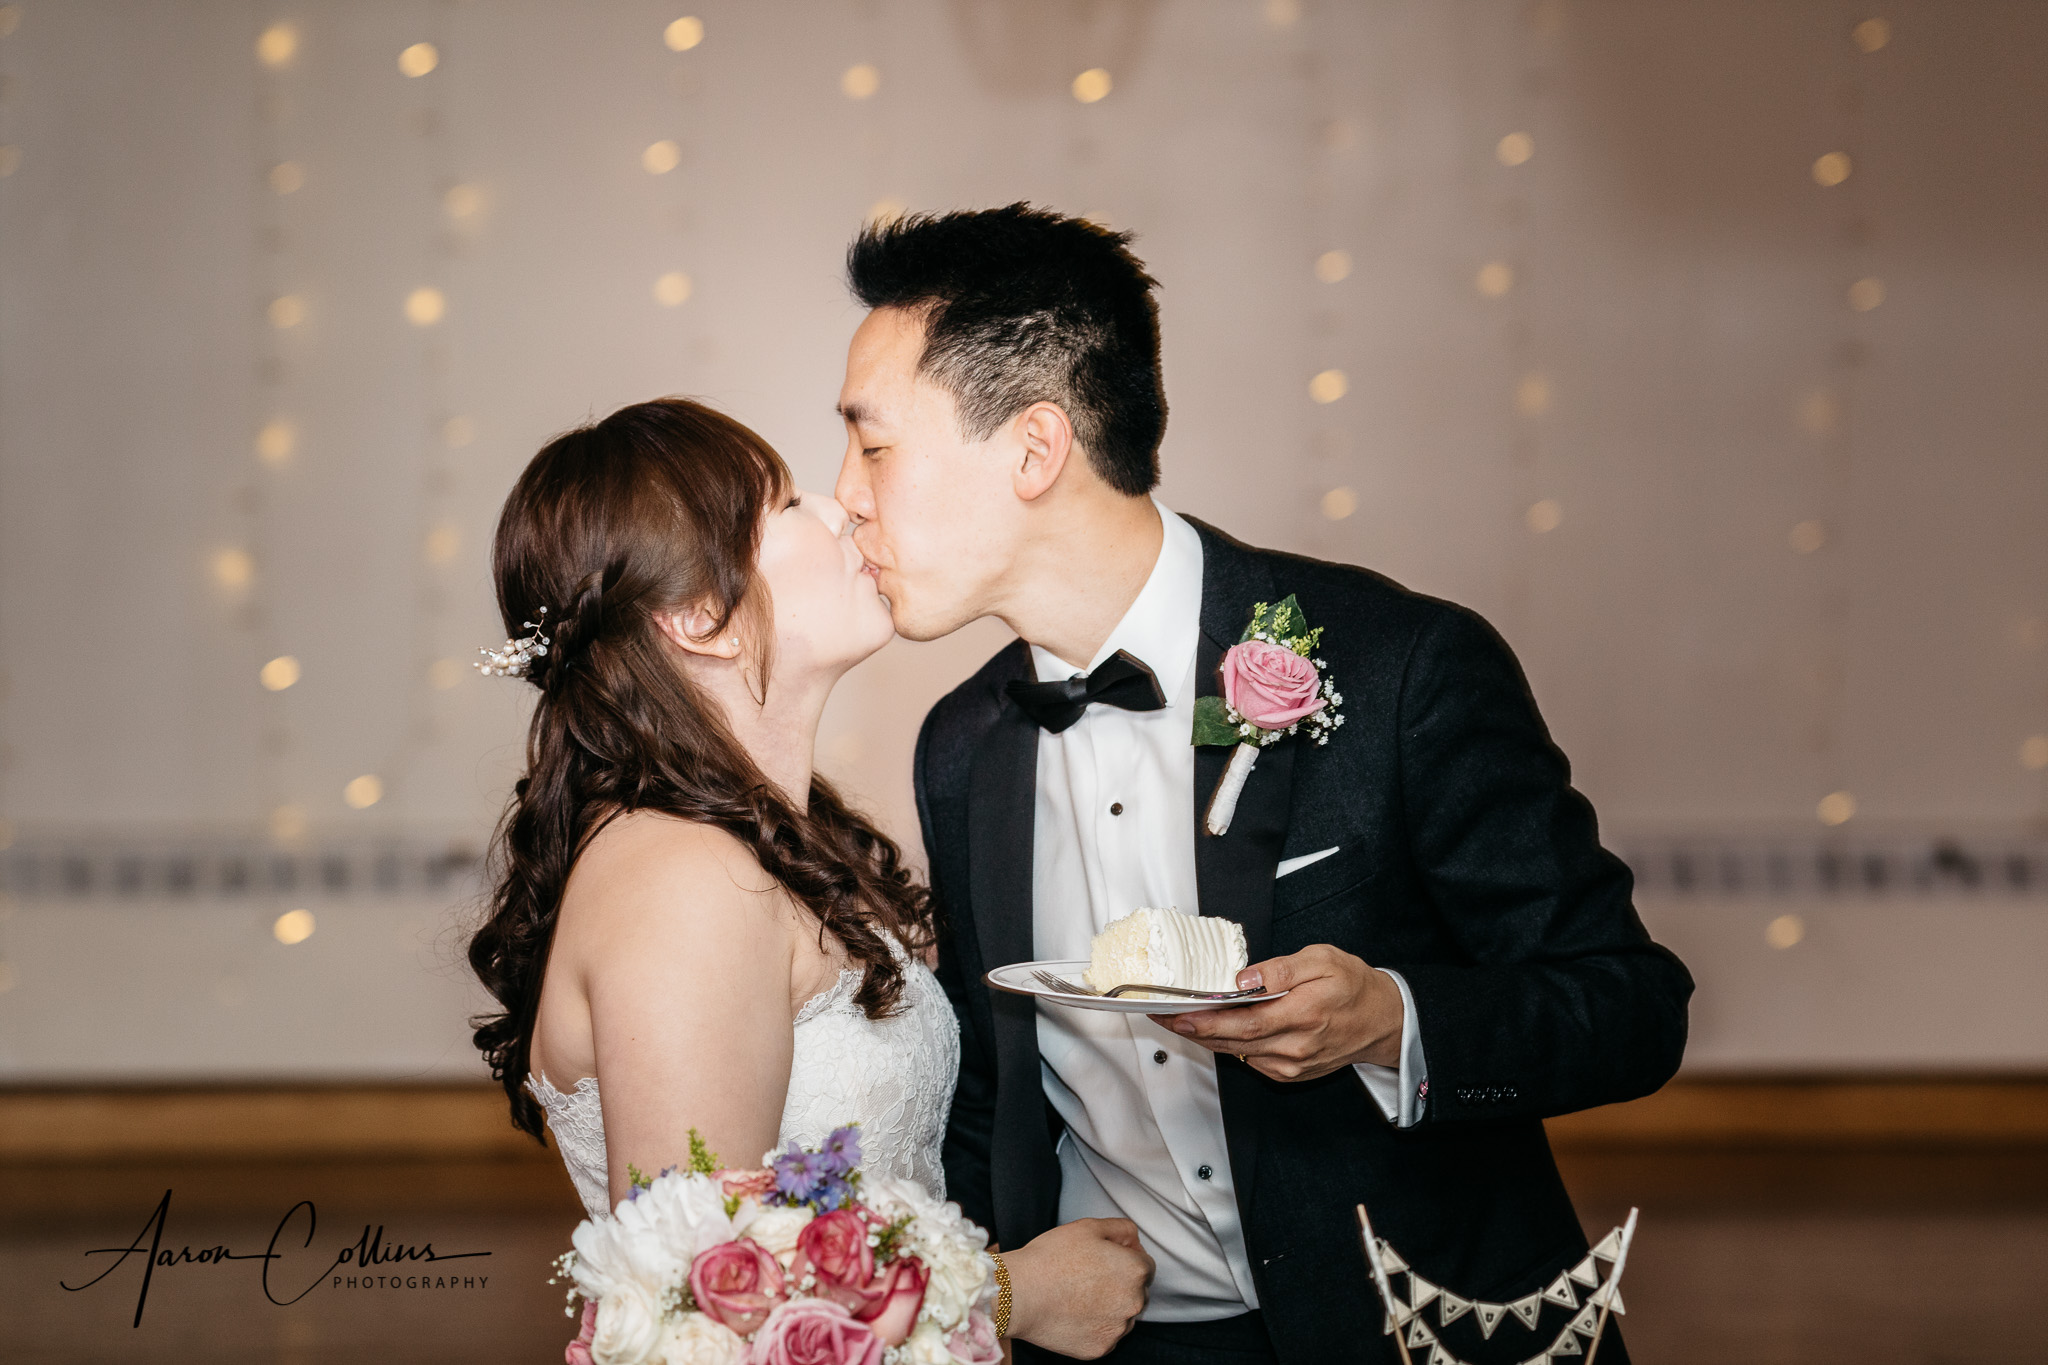 Bride and groom cutting the cake and sharing a kiss